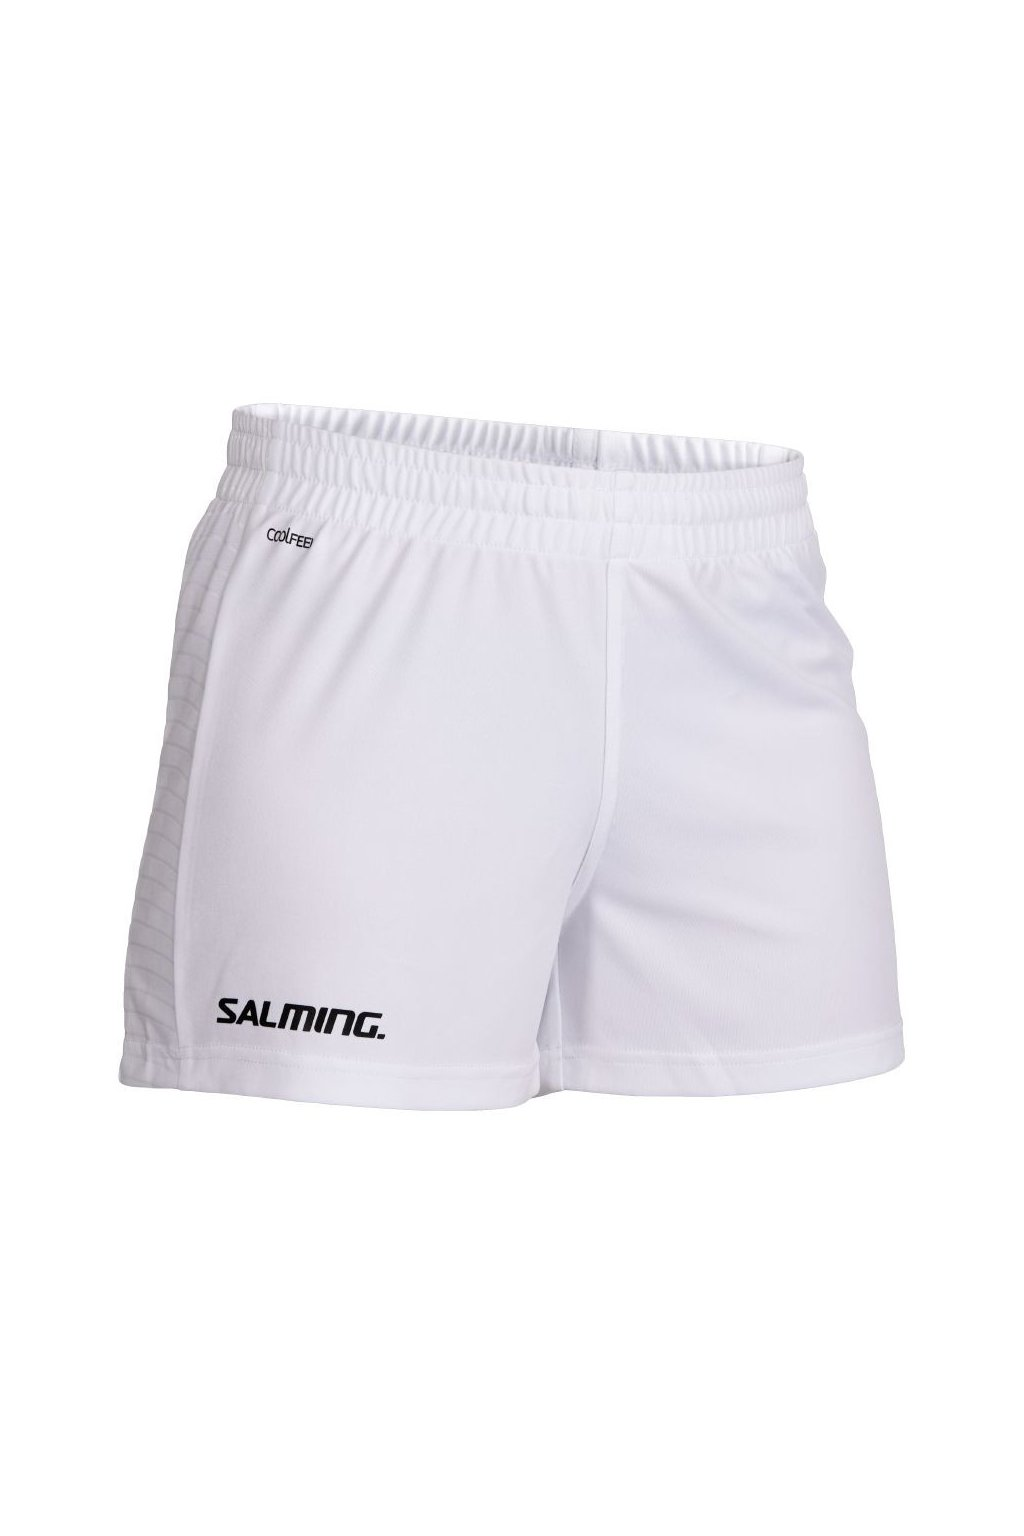 salming diamond game shorts women (3)